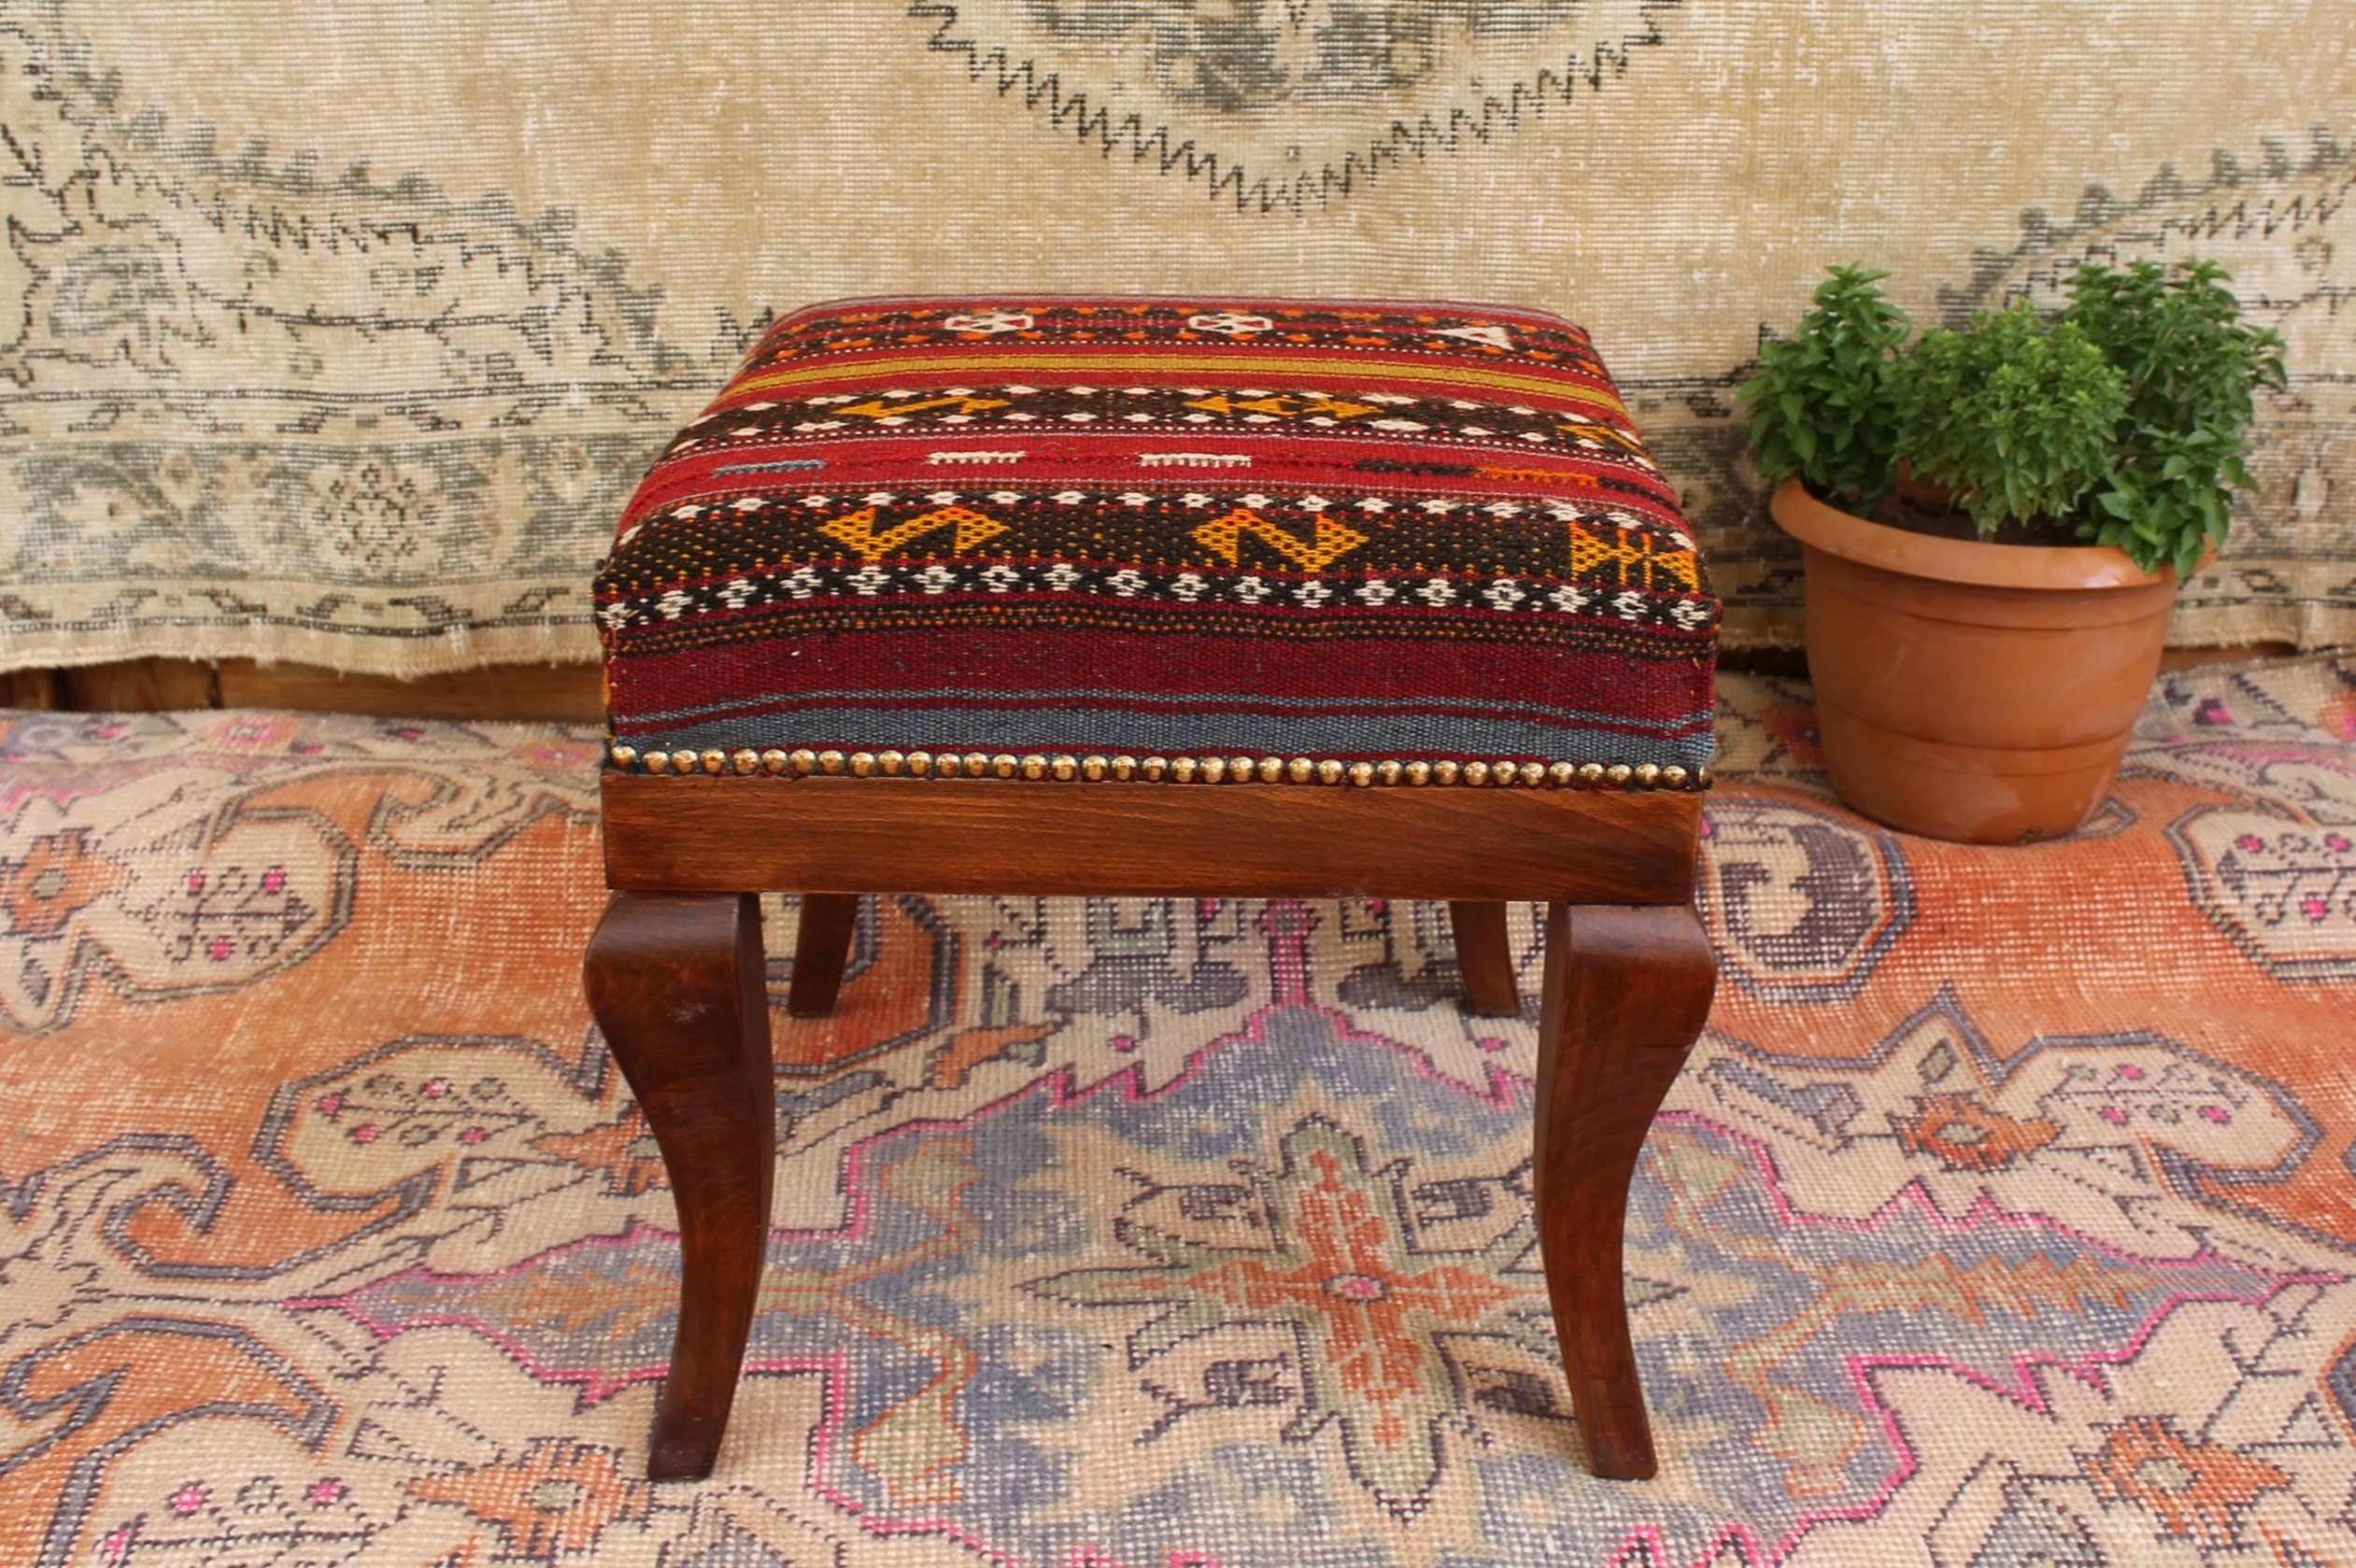 Turkish Kilim Rug Footstool Wood Chair Handcrafted Vintage Rug